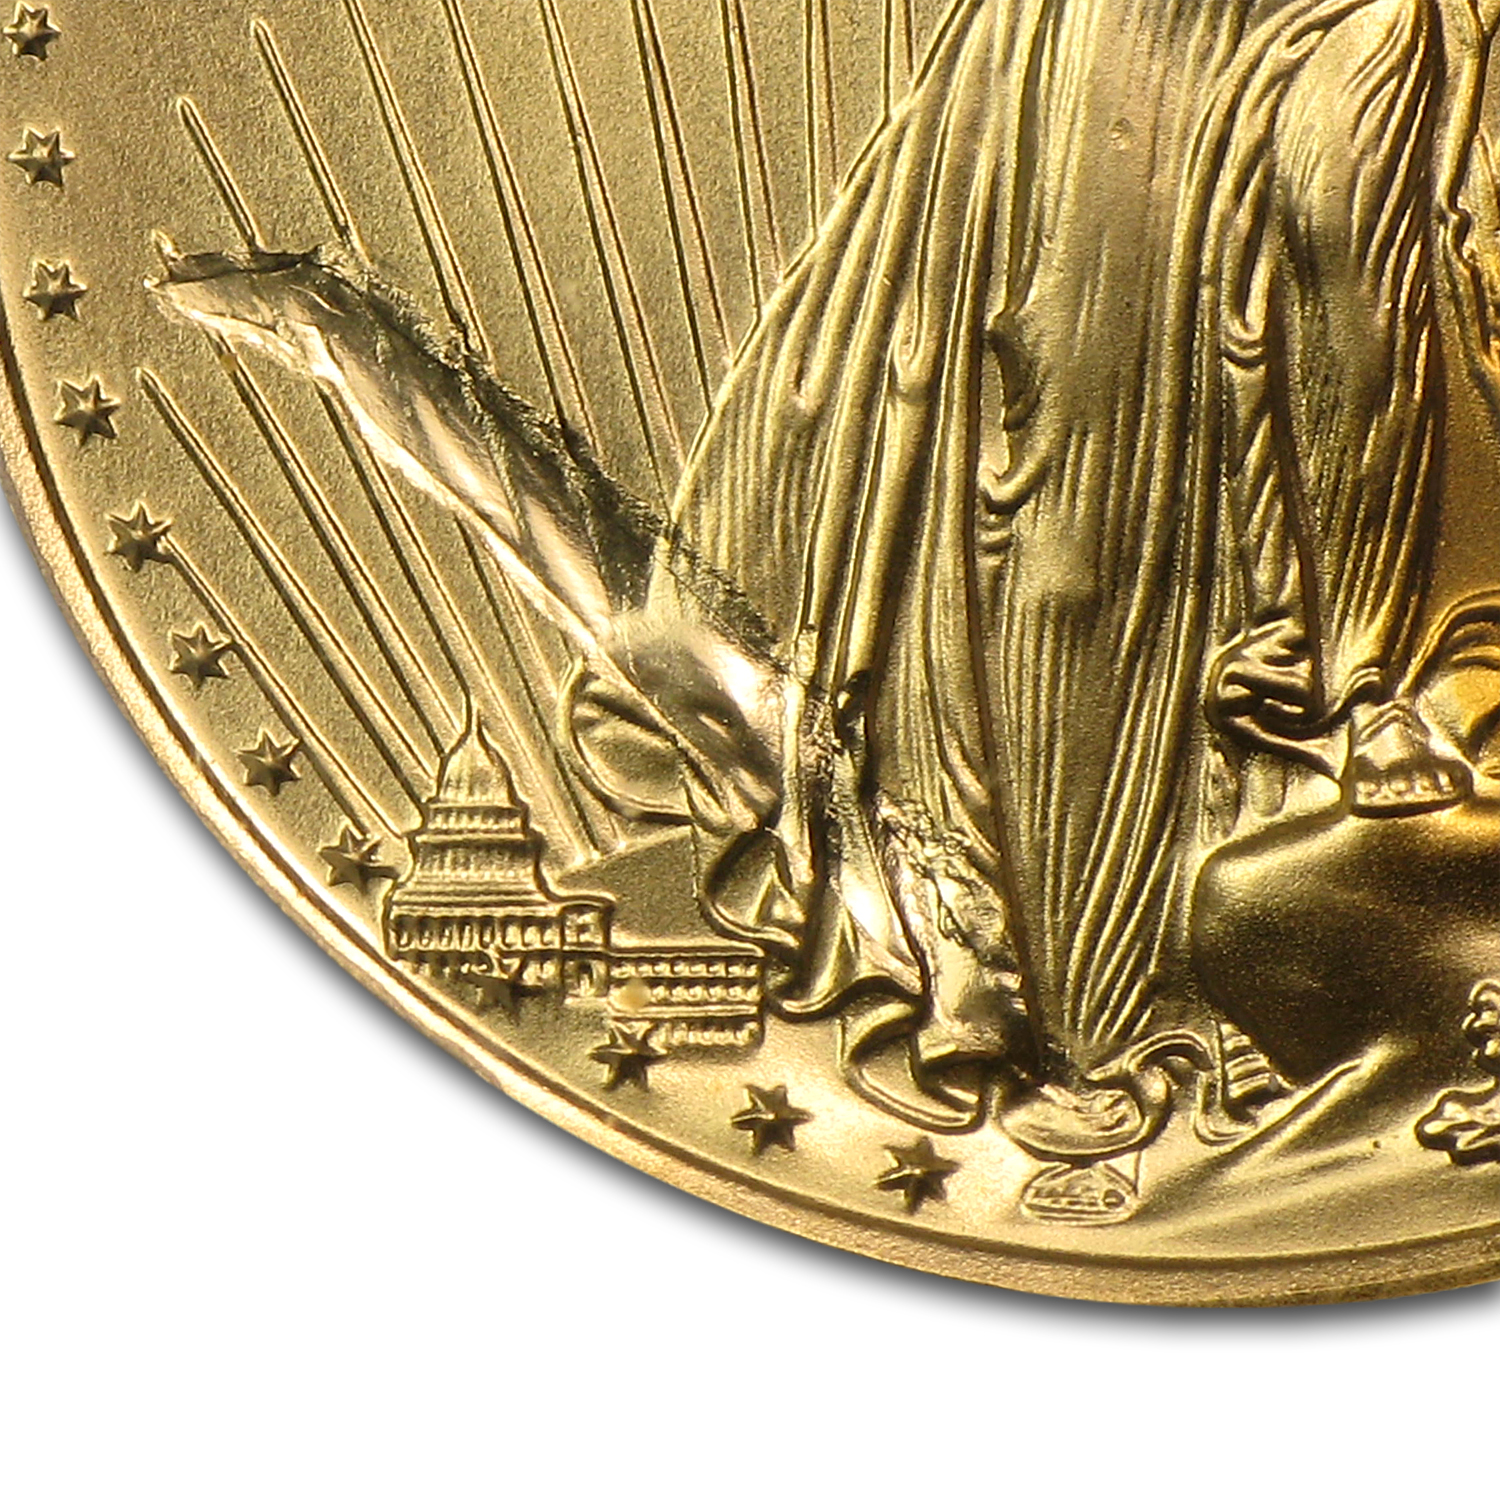 1999-W 1/4 oz Gold American Eagle MS-69 PCGS (Struck Thru Obv)